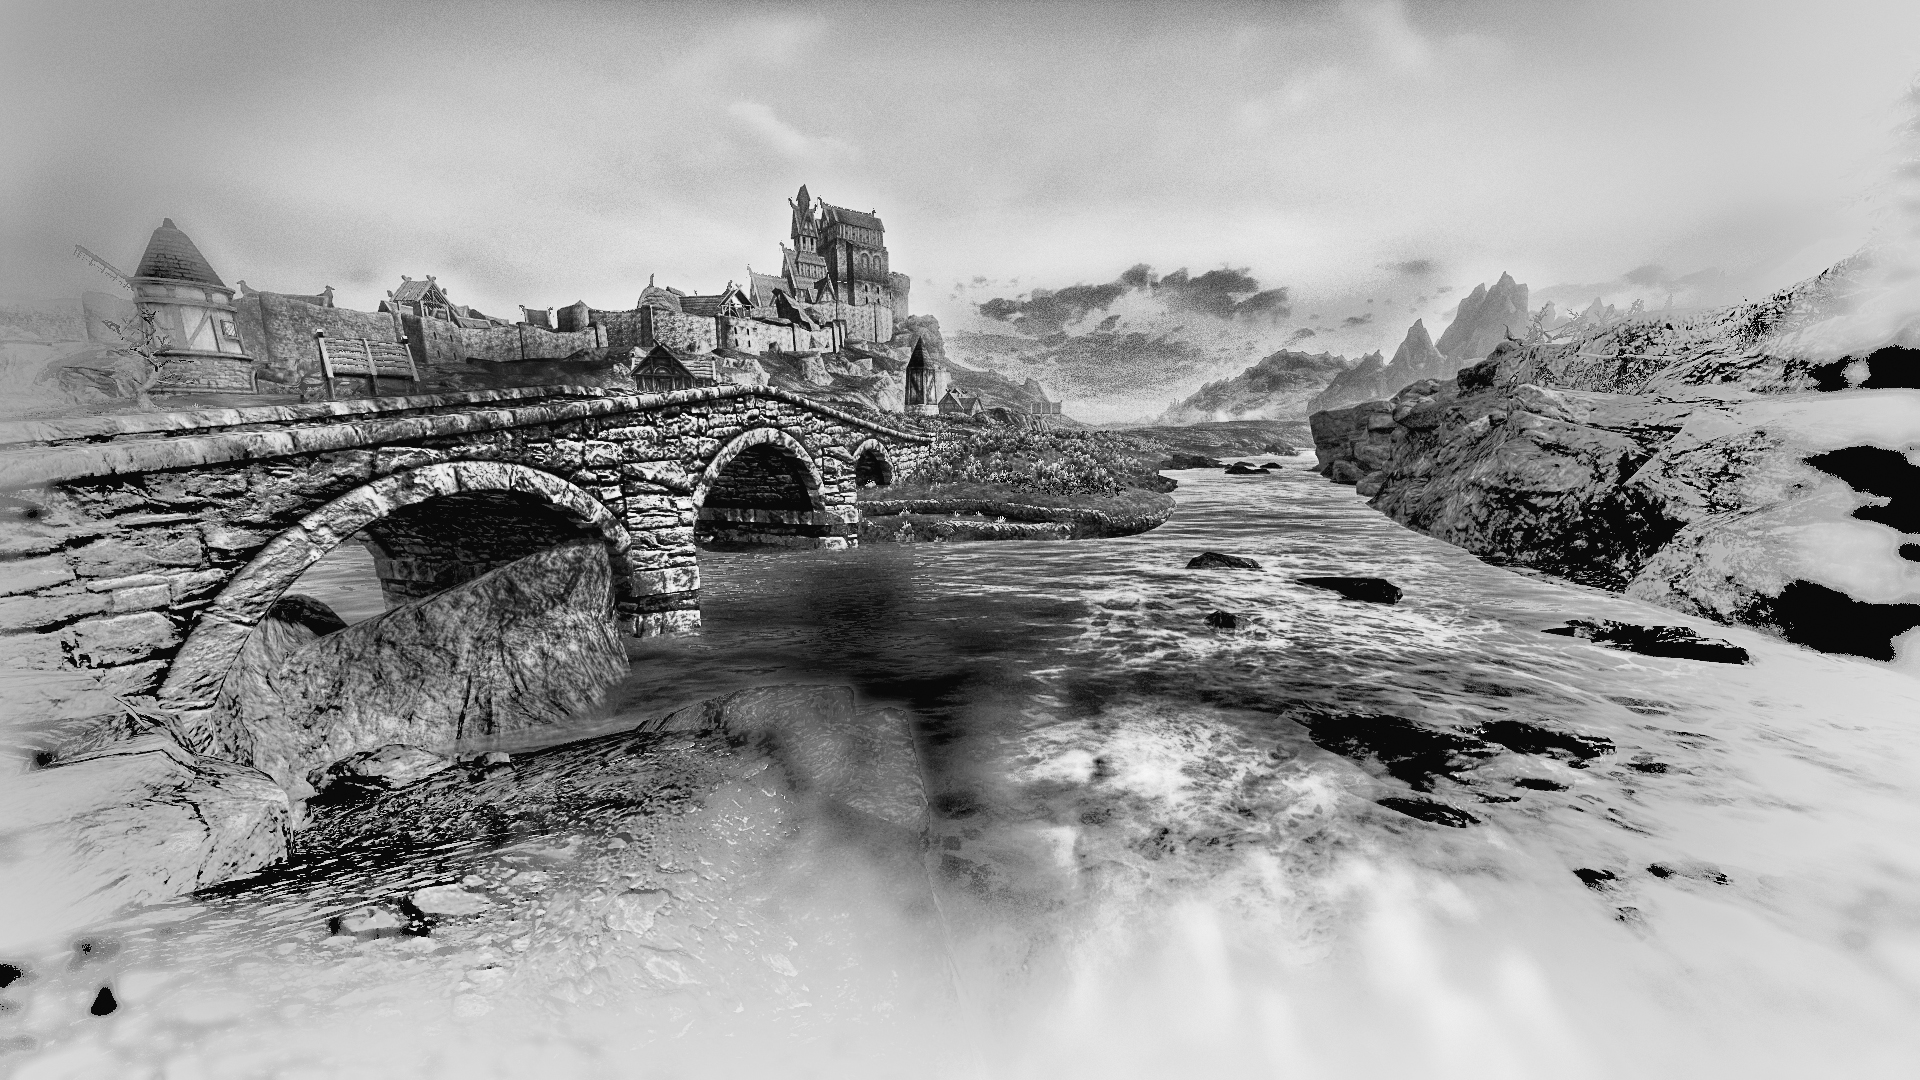 Skyrim Black and White by firesion on DeviantArt